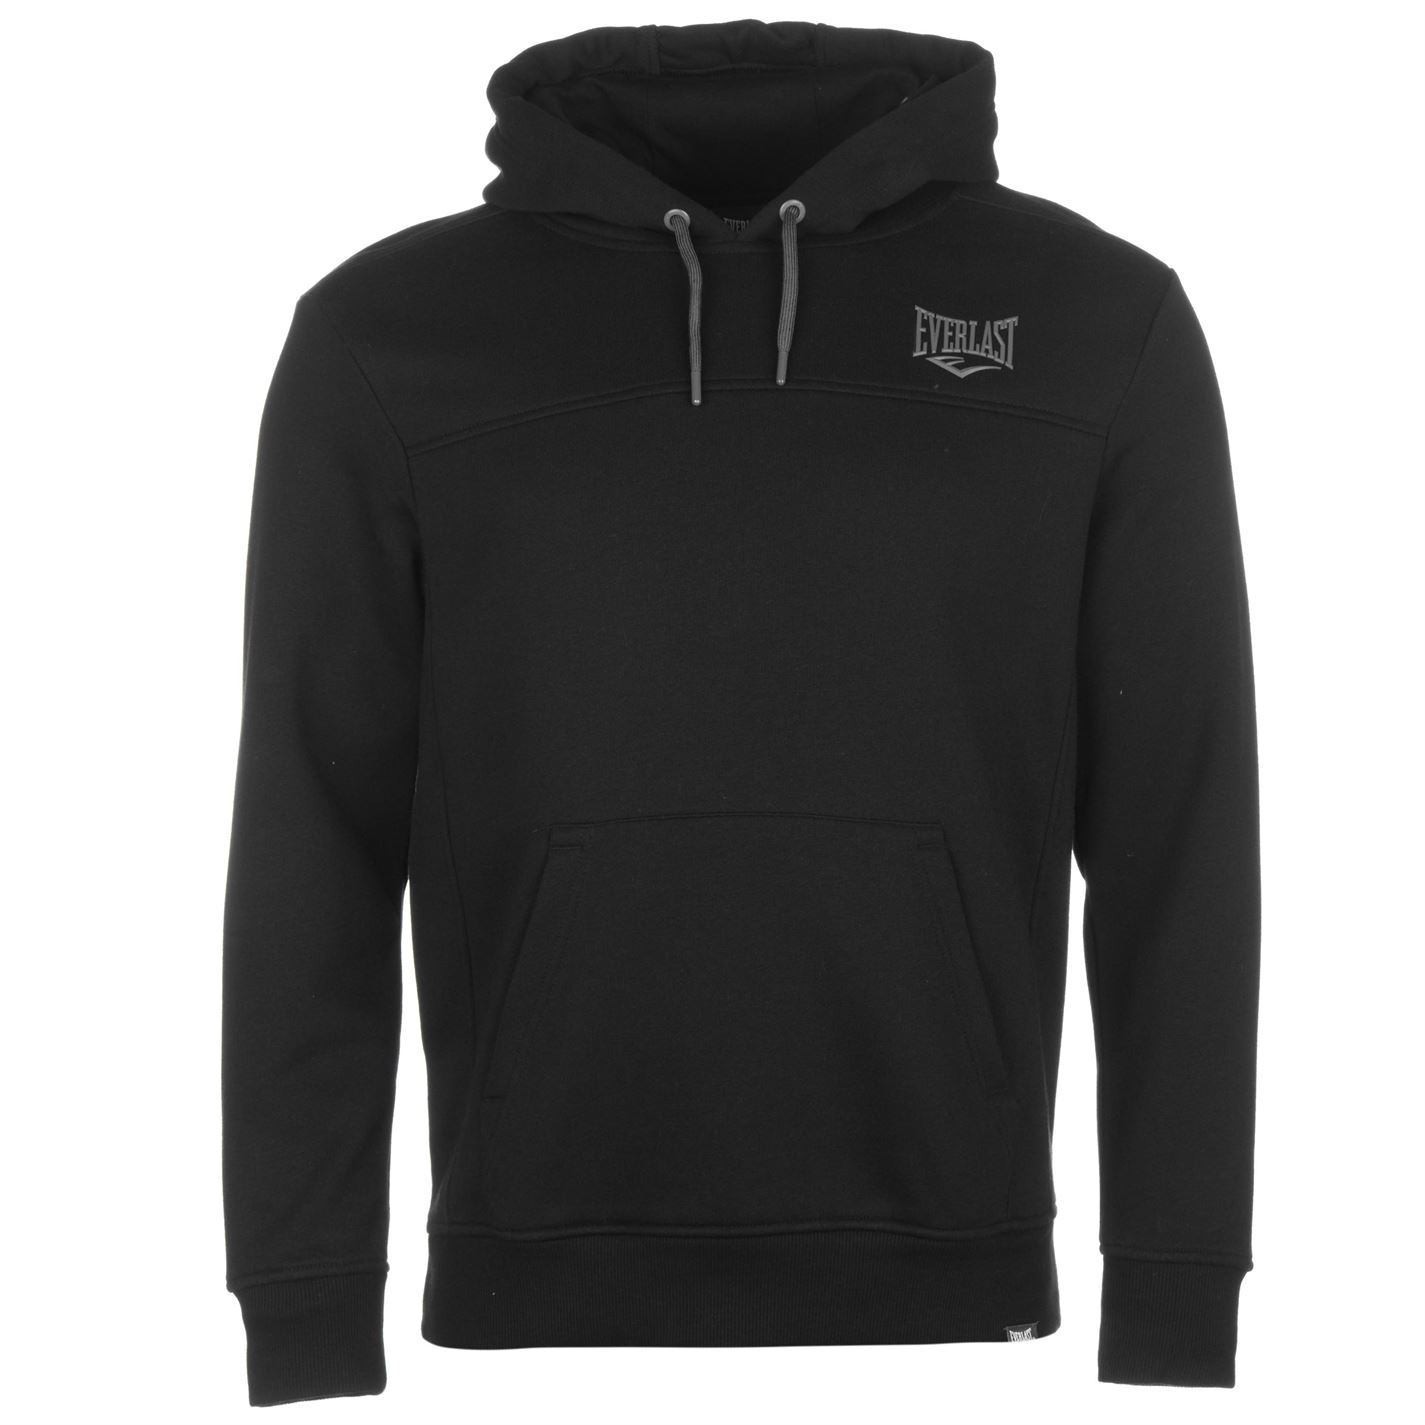 Everlast-Logo-Pullover-Hoody-Mens-OTH-Hoodie-Hooded-Top-Sweatshirt-Sweater thumbnail 8